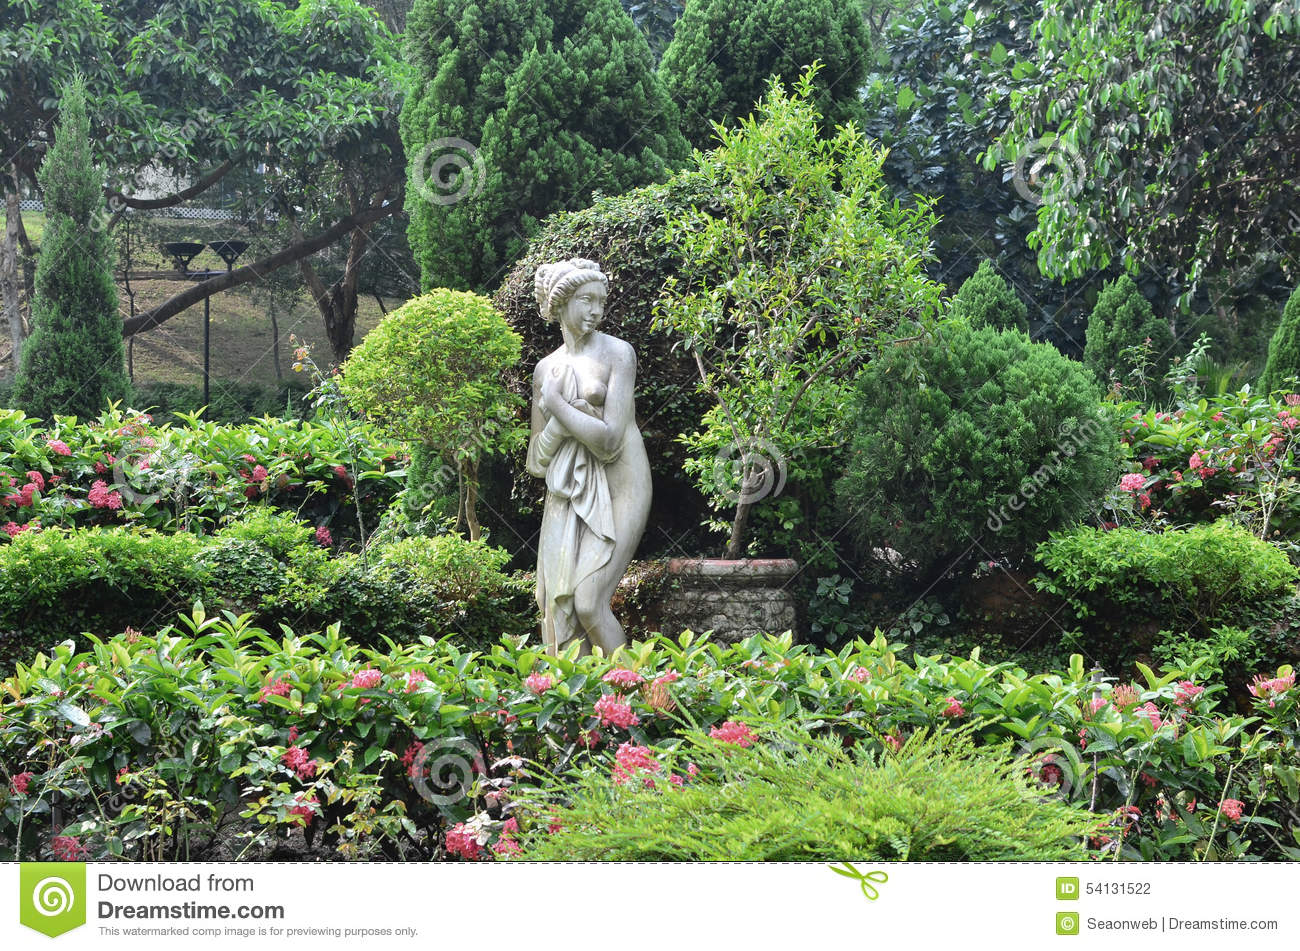 Download Classic Image Garden Statues A Little Girl In Vintage Style Stock  Photo   Image Of